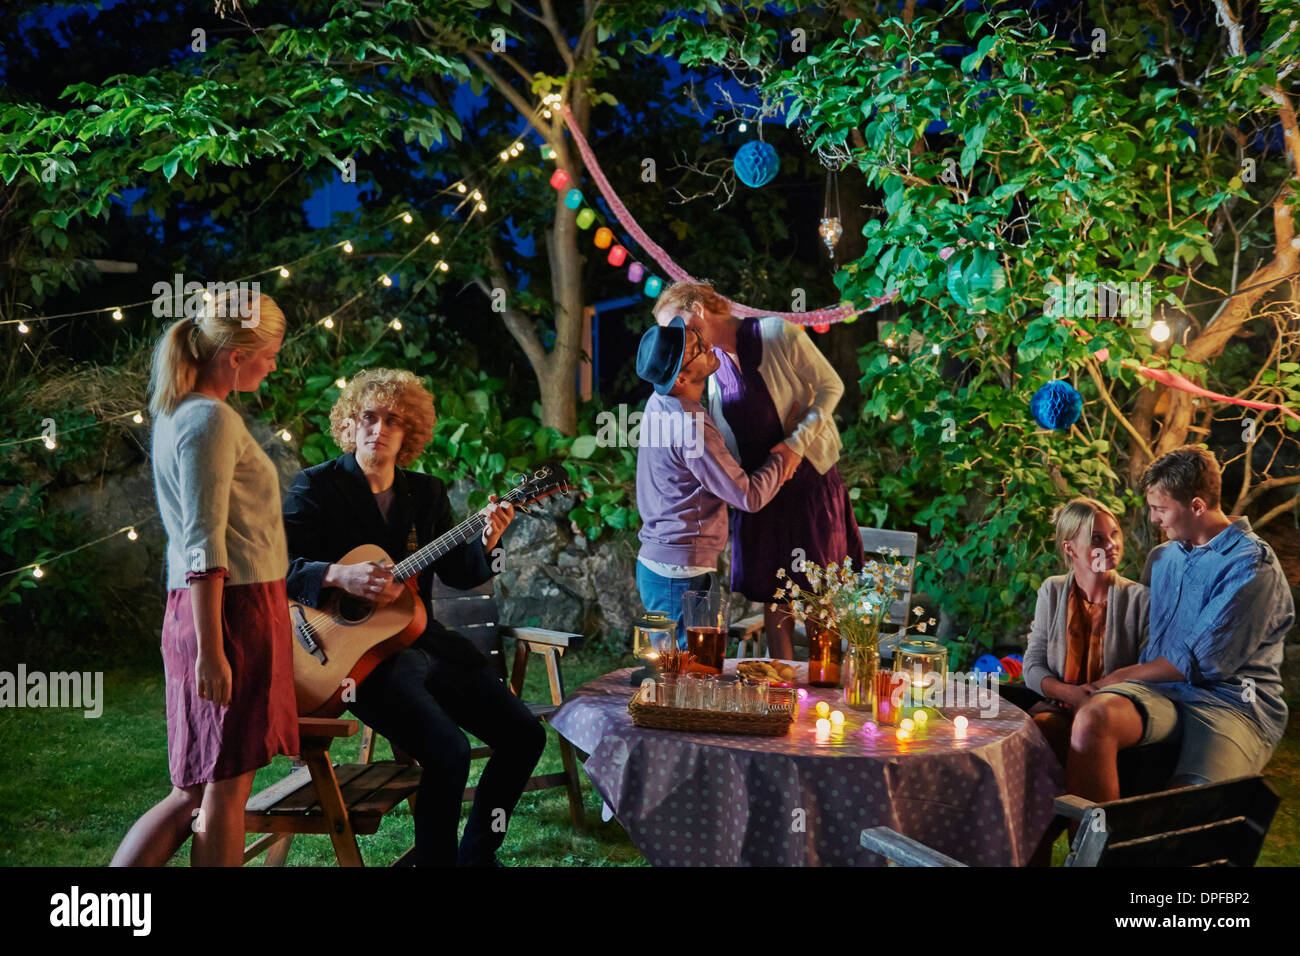 Three couples enjoying evening garden party - Stock Image